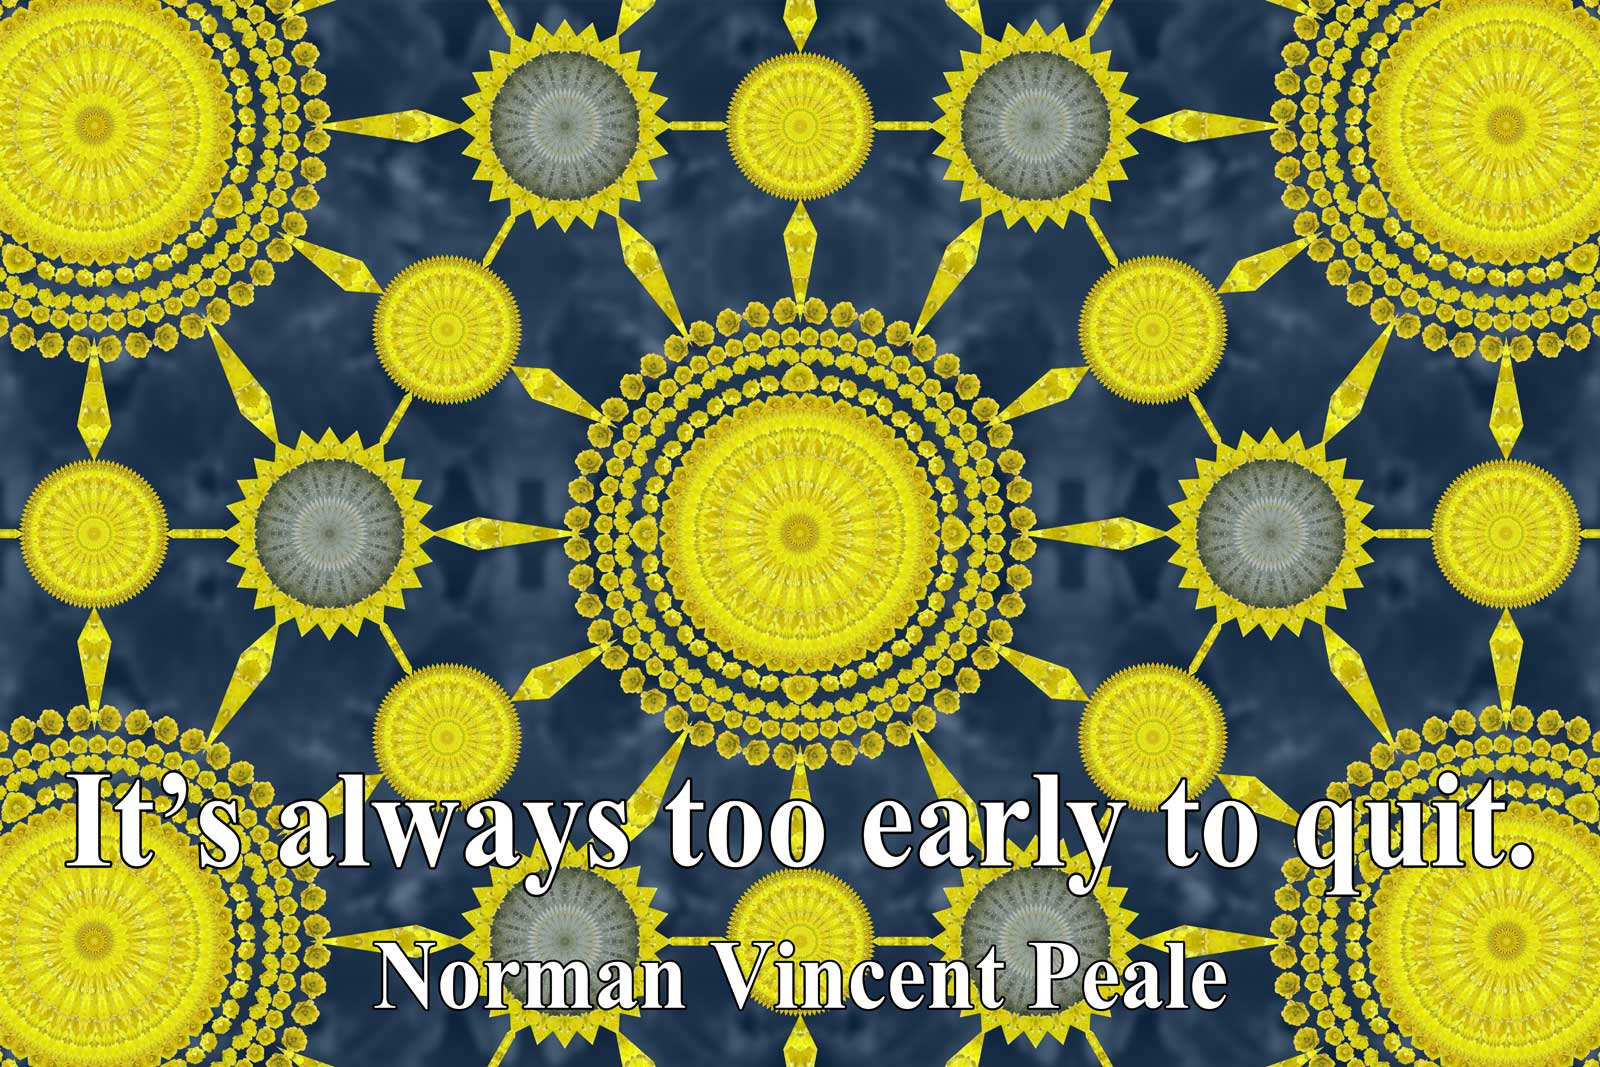 Norman Vincent Peale's quote #4